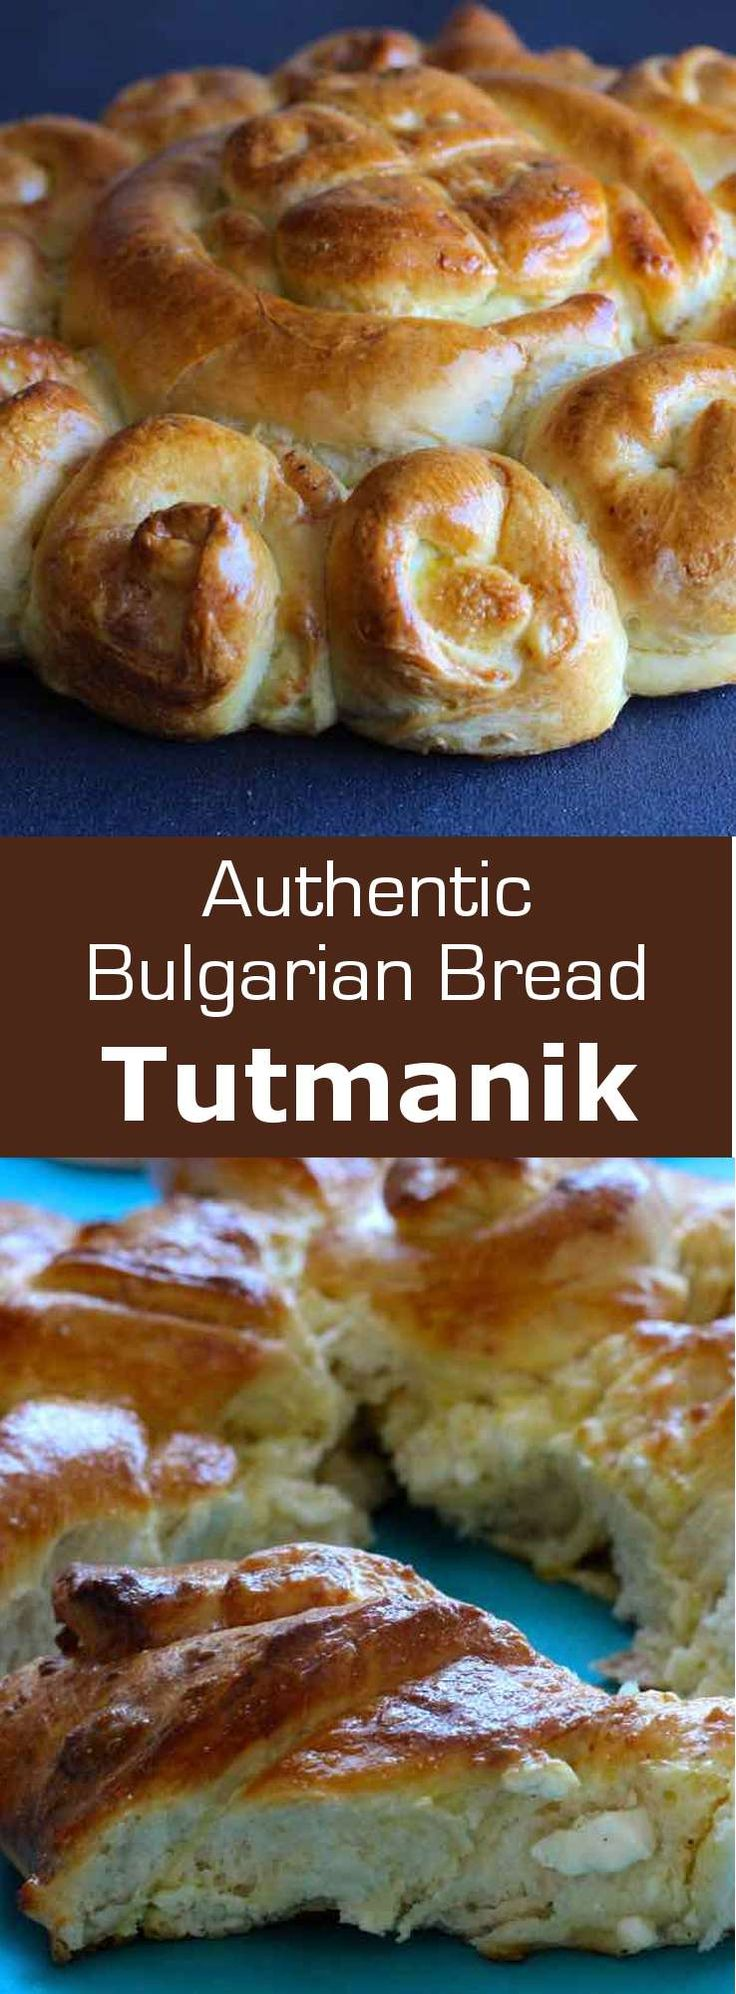 Mesenitza (or tutmanik) is one of the most famous Bulgarian breads. It is…